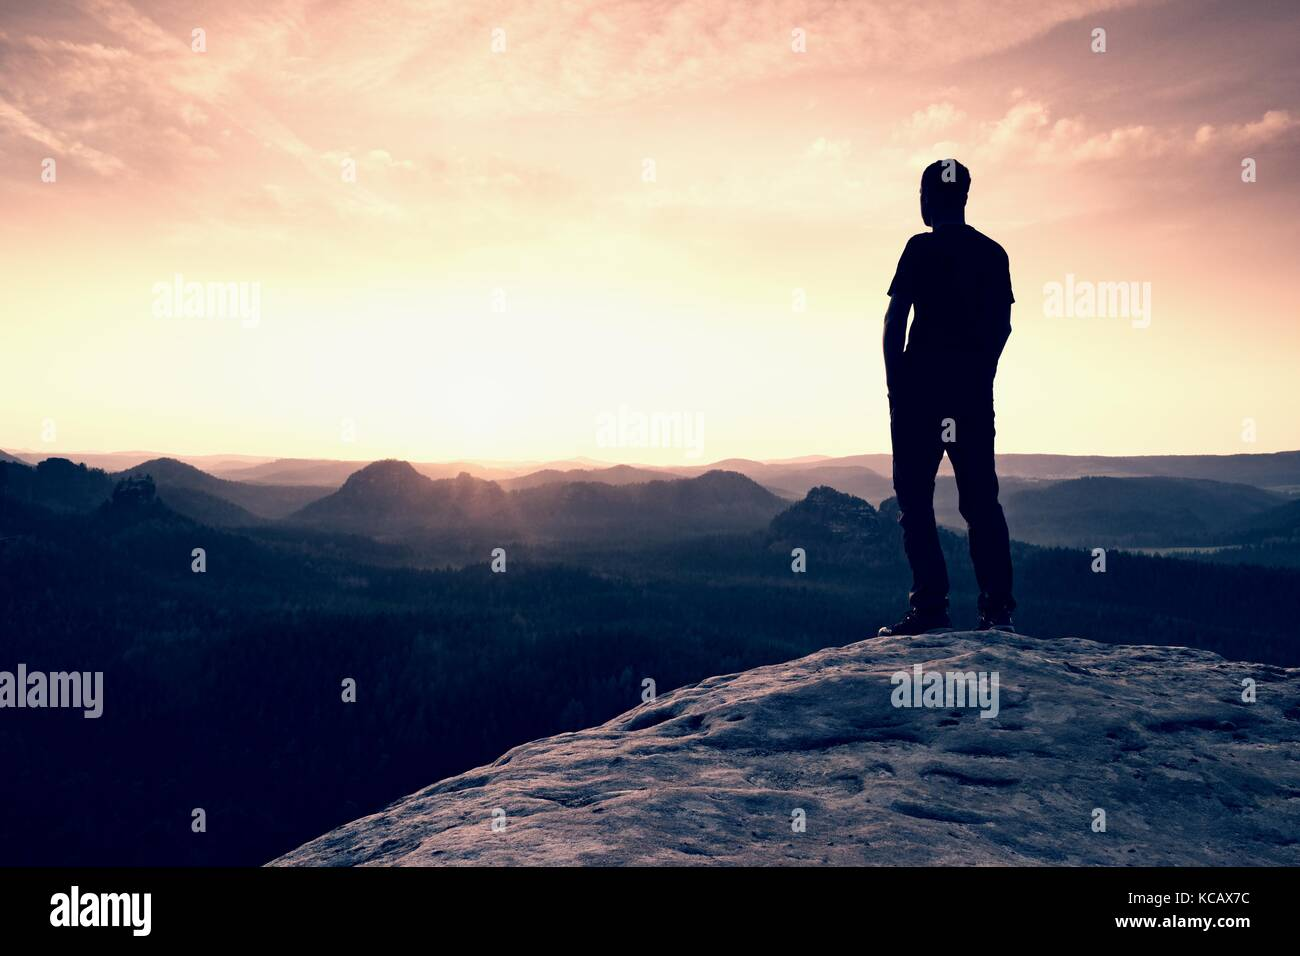 Silhouette of Confident and Powerful Man Standing with Hands on Hips, Late Day Sun with Copy Space - Stock Image